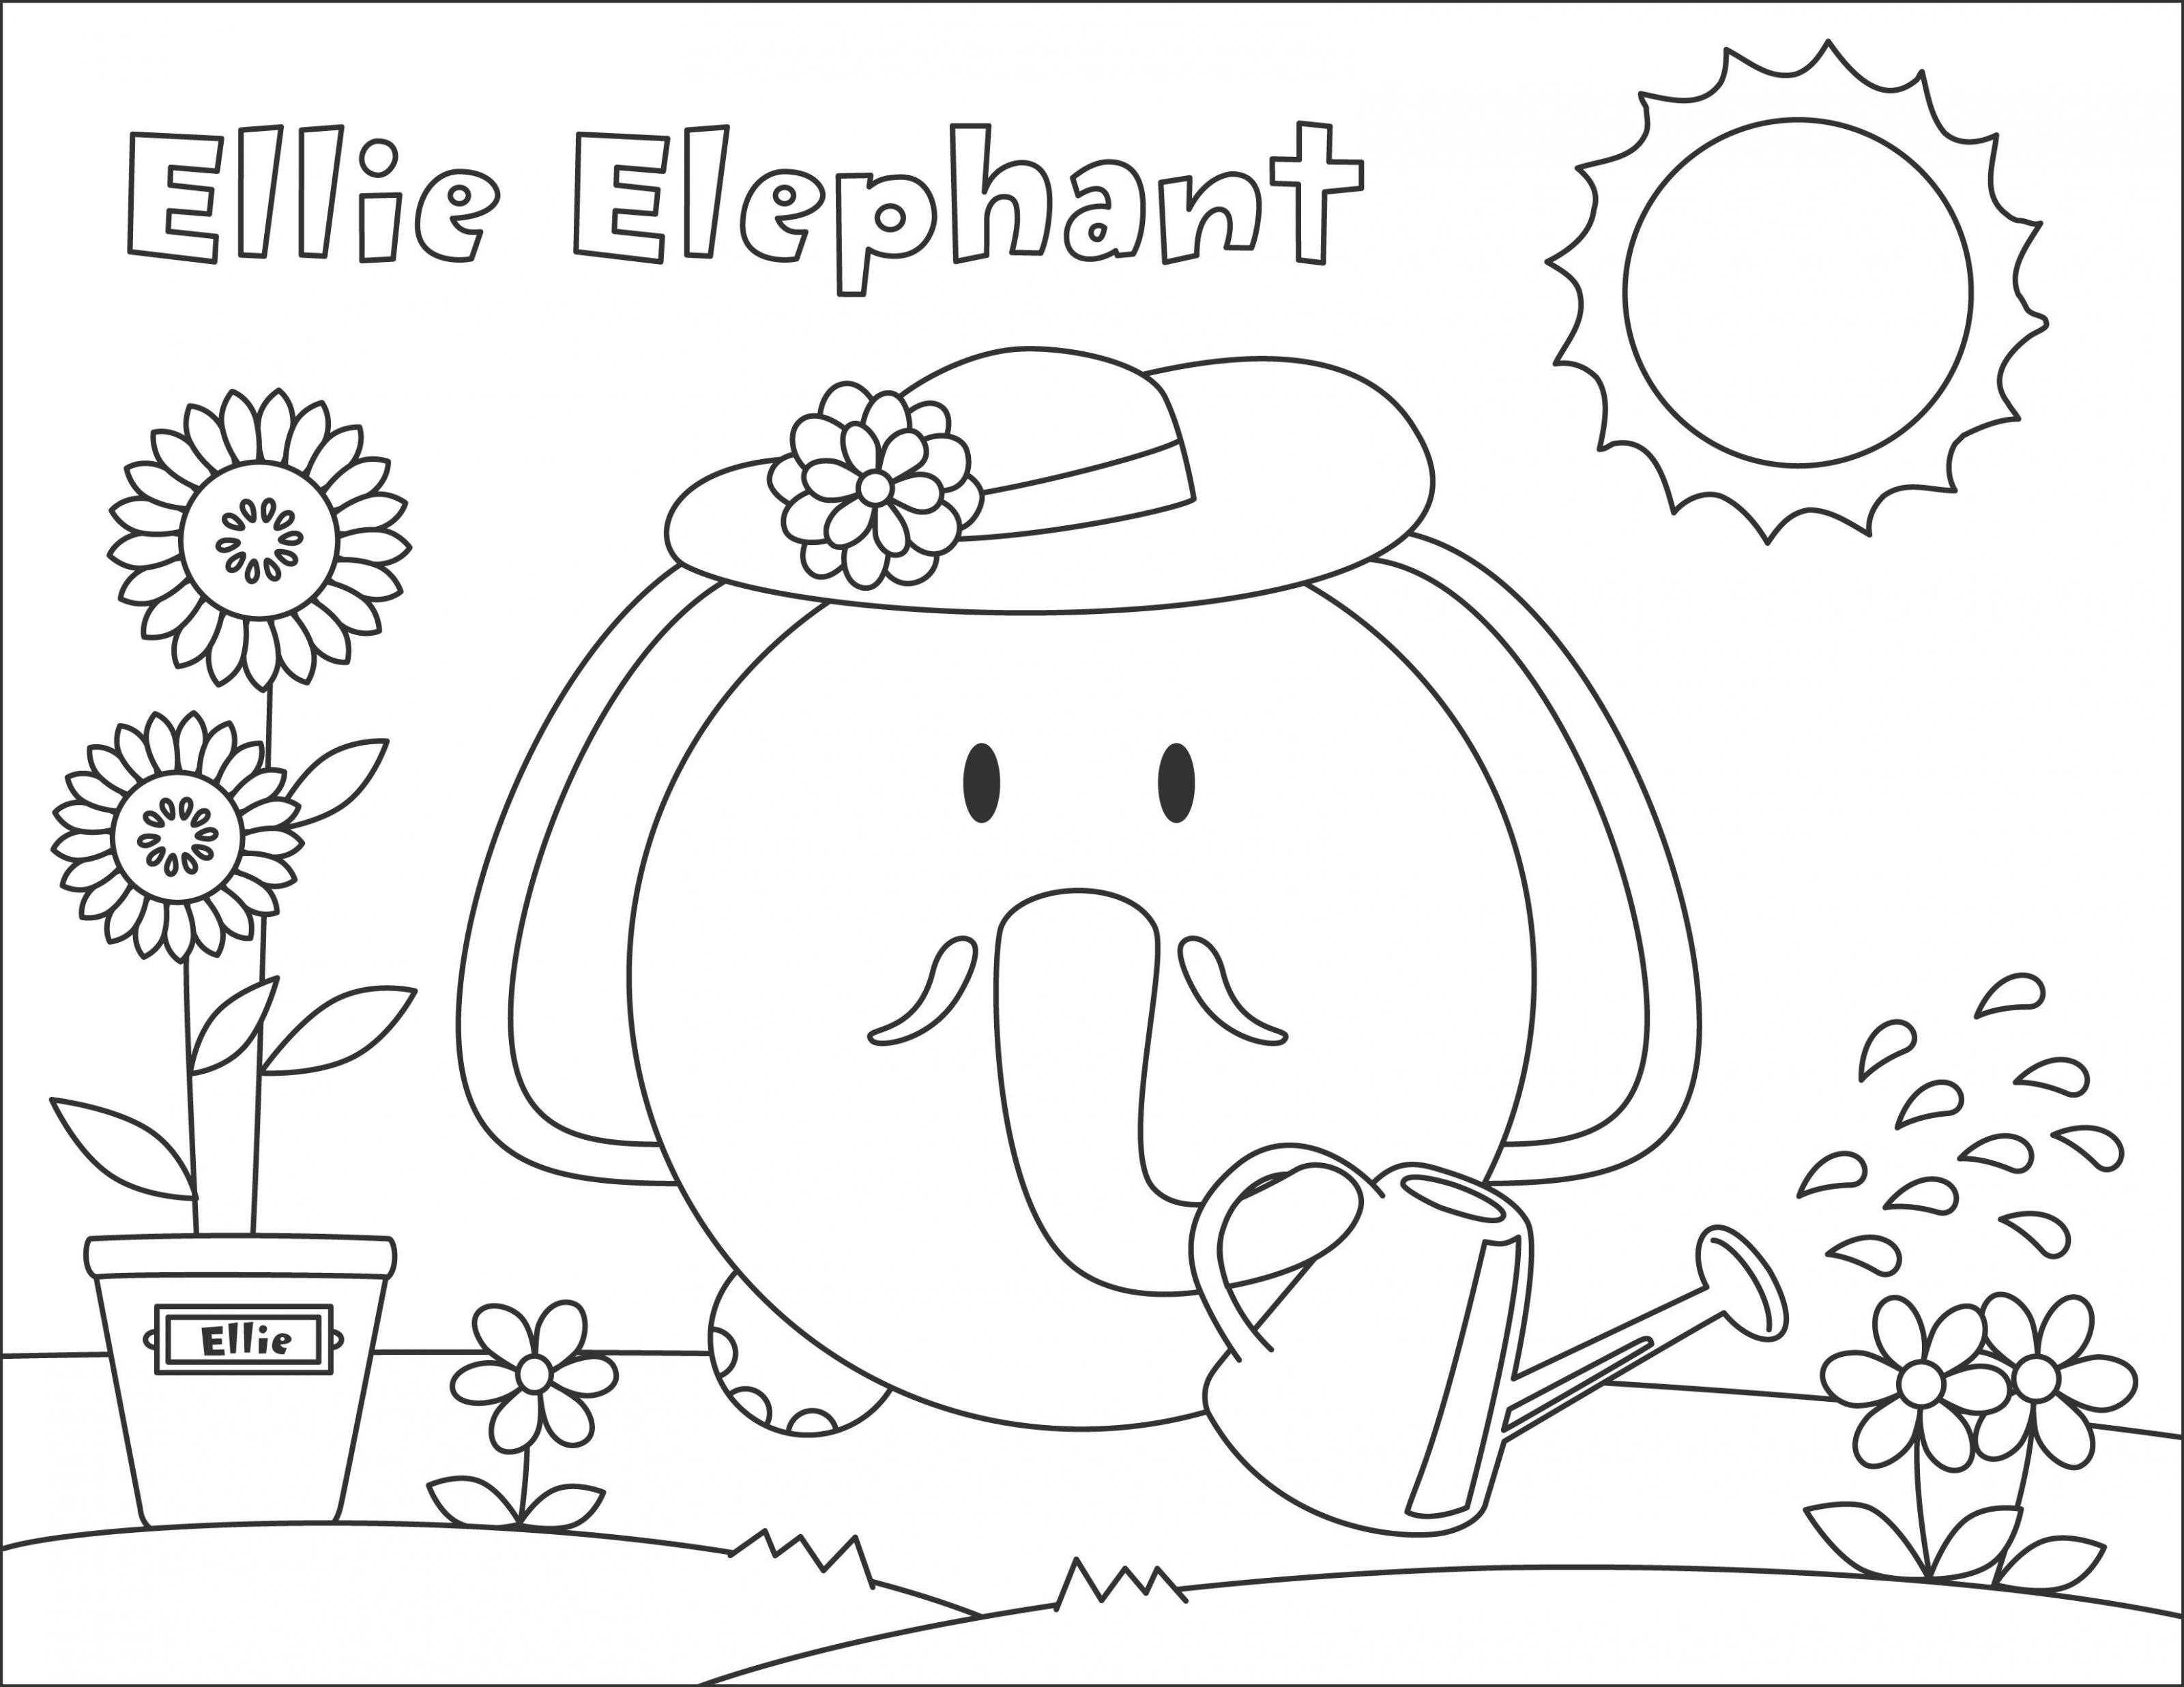 Thanksgiving Coloring Pages Dltk Butterfly Valid | Coloring Pages – Christmas Coloring Pages Dltk